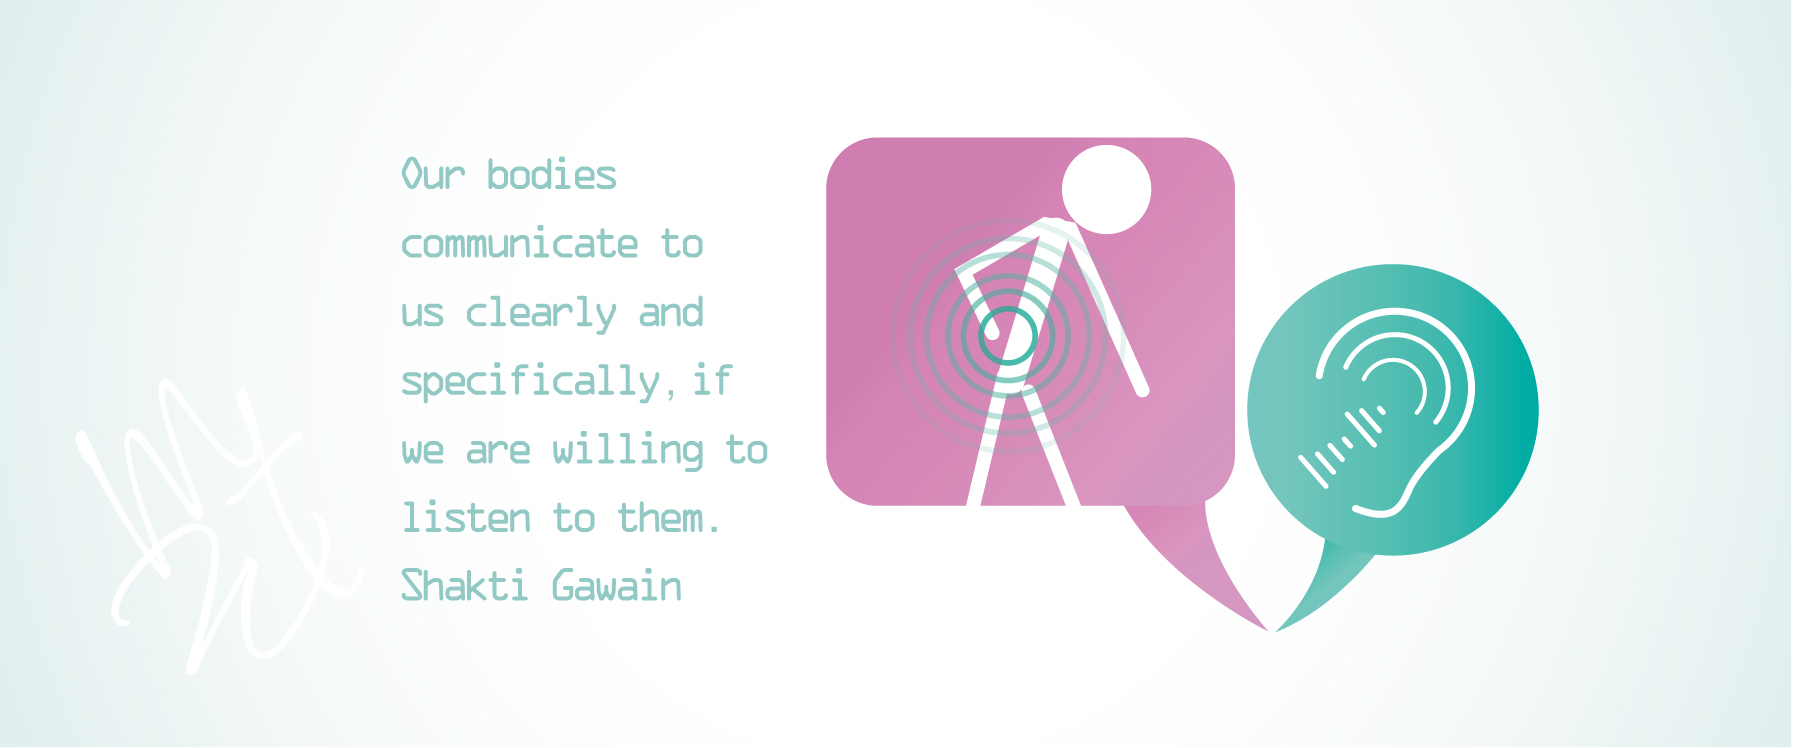 Our bodies communicate to us clearly and specifically, if we are willing to listen to them. Shakti Gawain